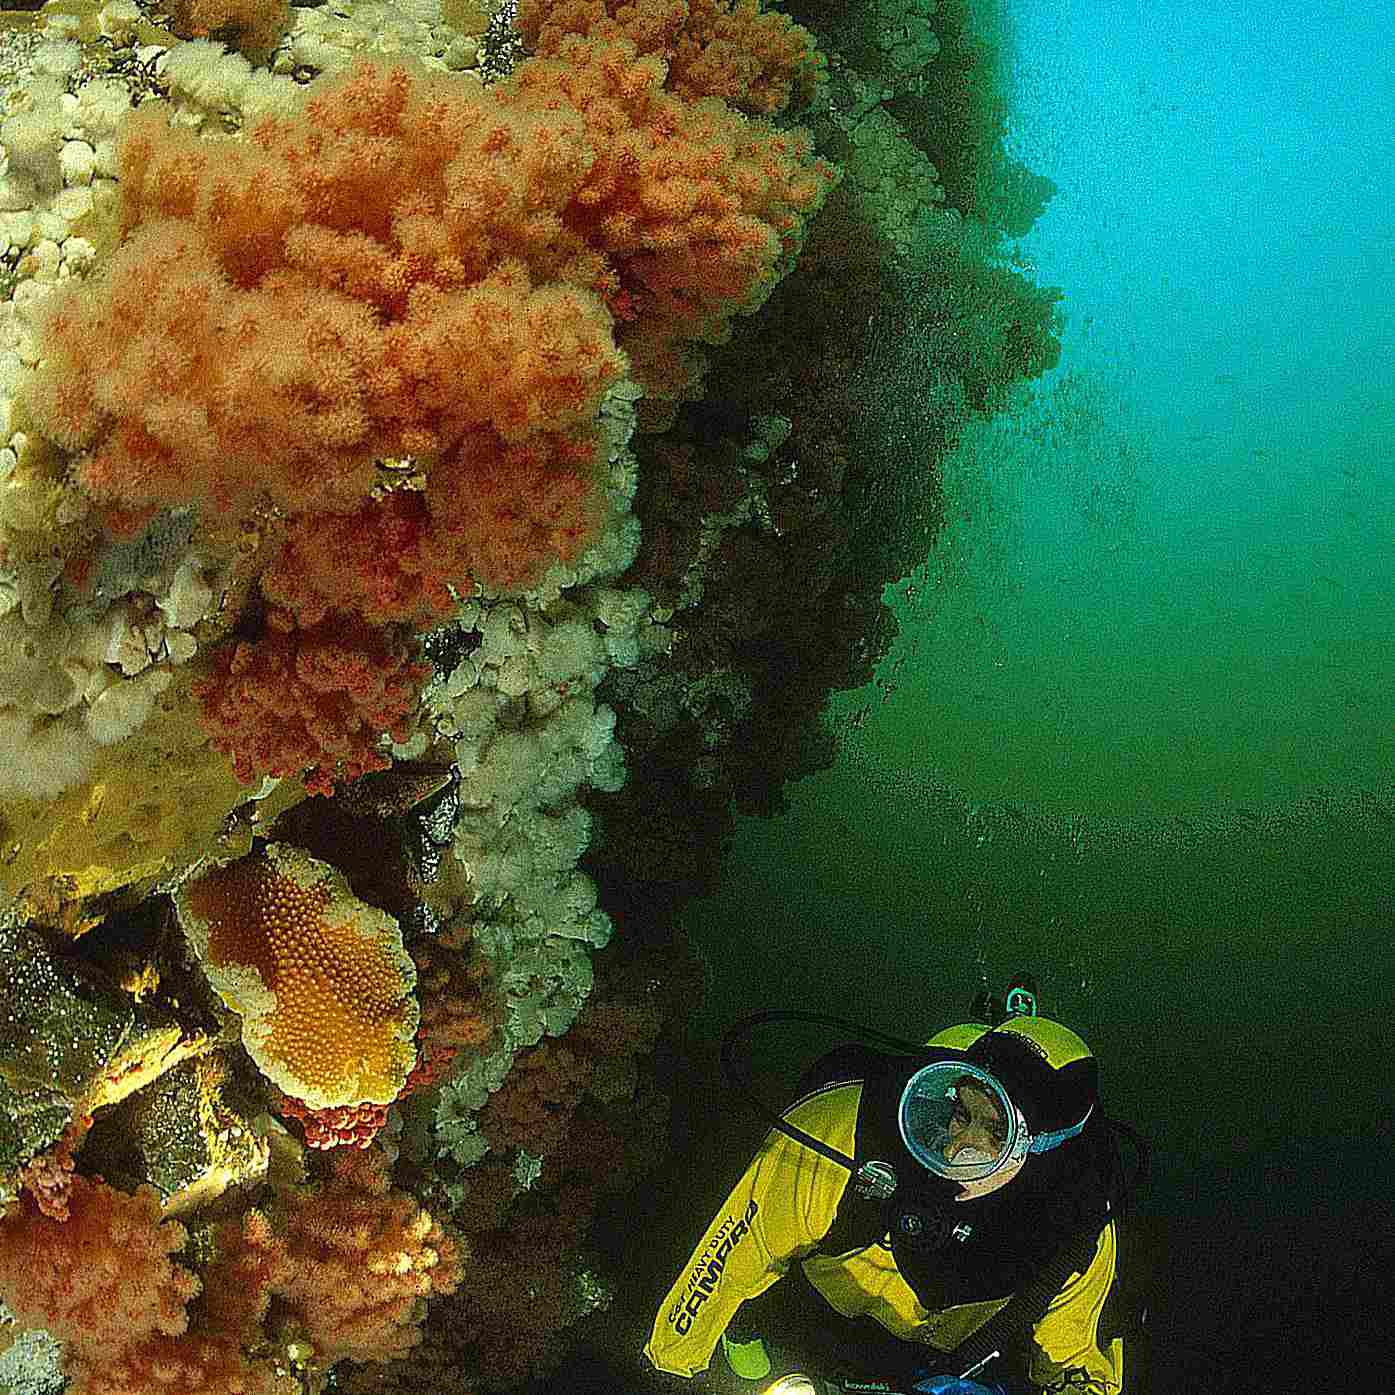 A diver wearing a drysuit investigates cold water coral formations